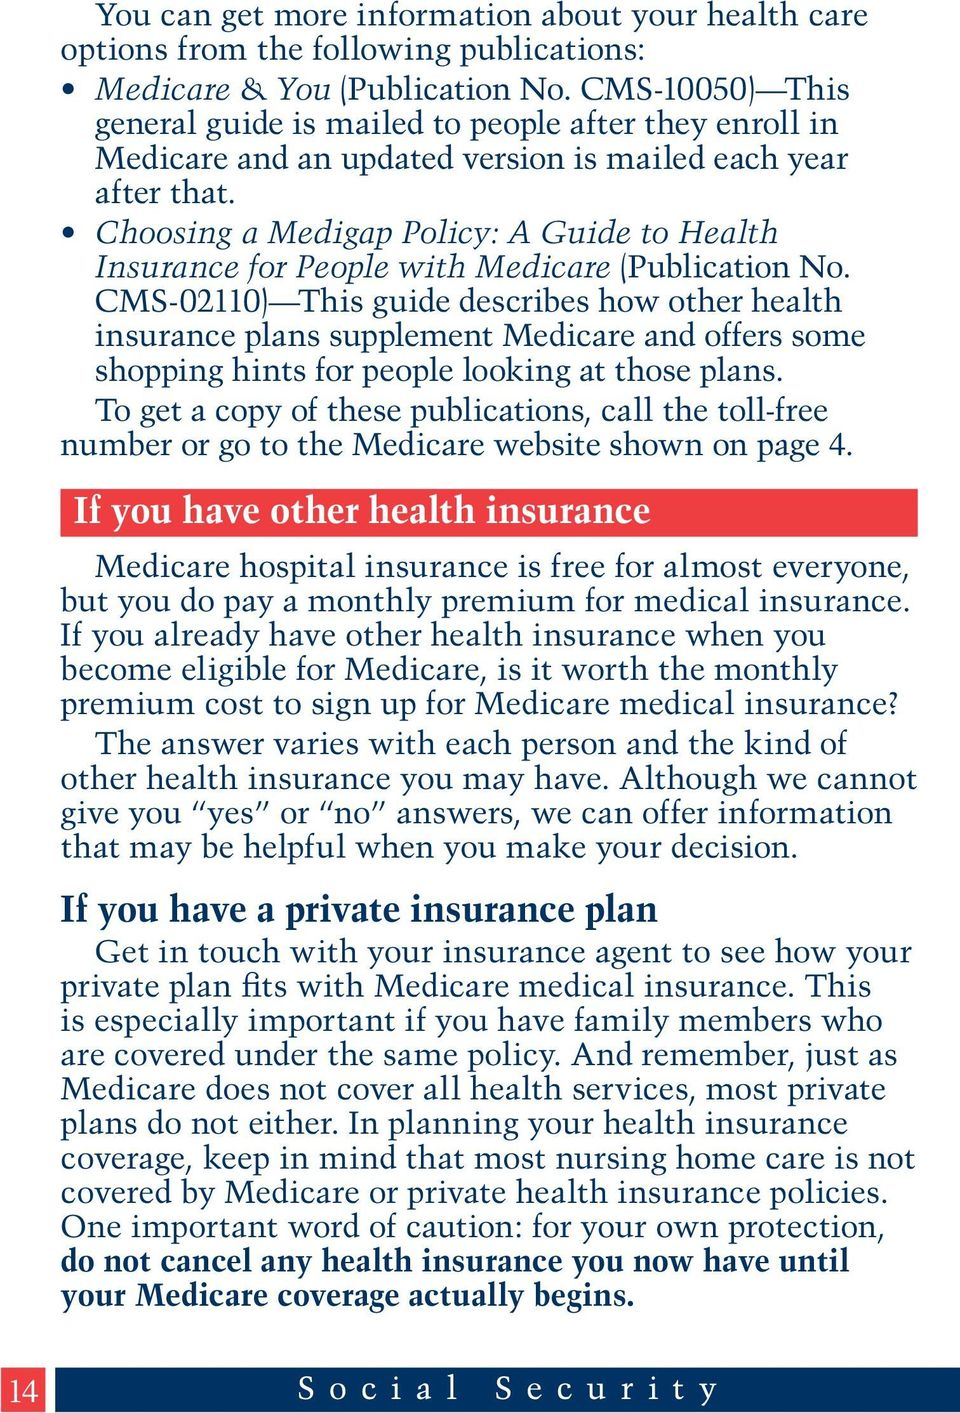 Choosing a Medigap Policy: A Guide to Health Insurance for People with Medicare (Publication No.